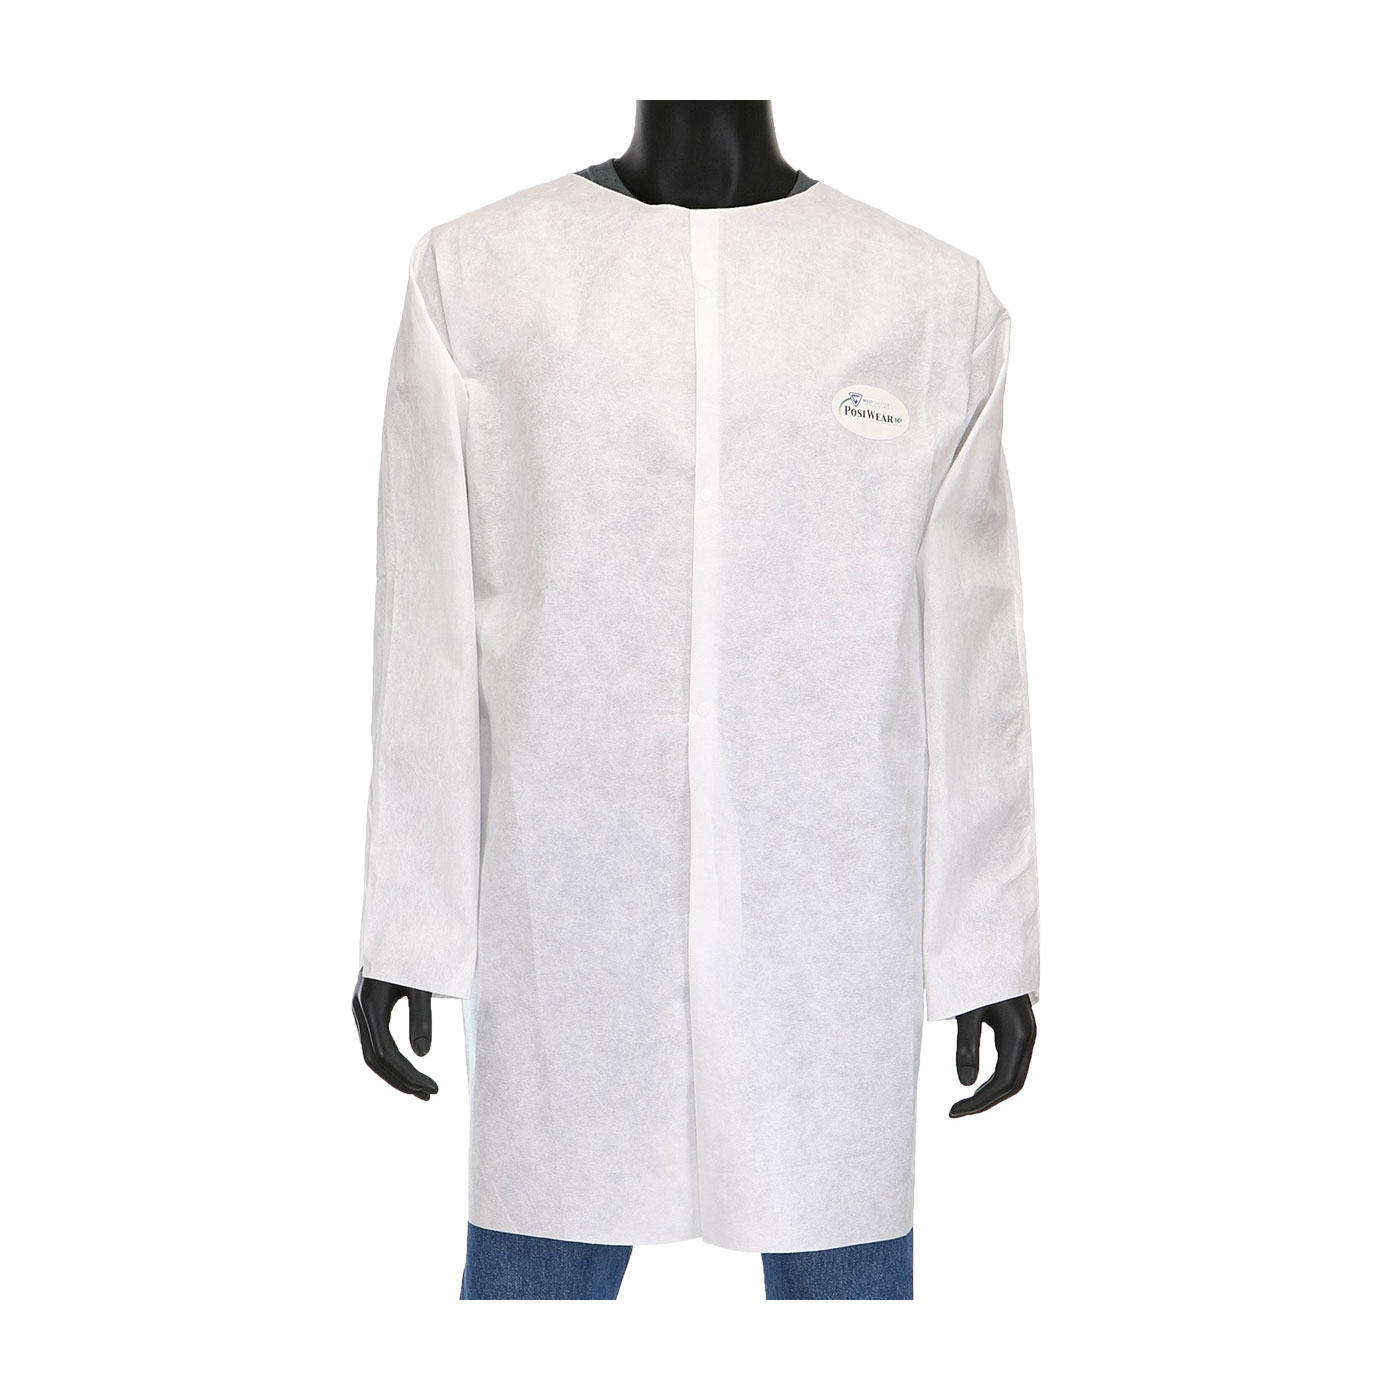 C3818 PIP® / West-Chester® Posi-Wear® M3 Snap White Limited-Use Lab Coats with No Pockets